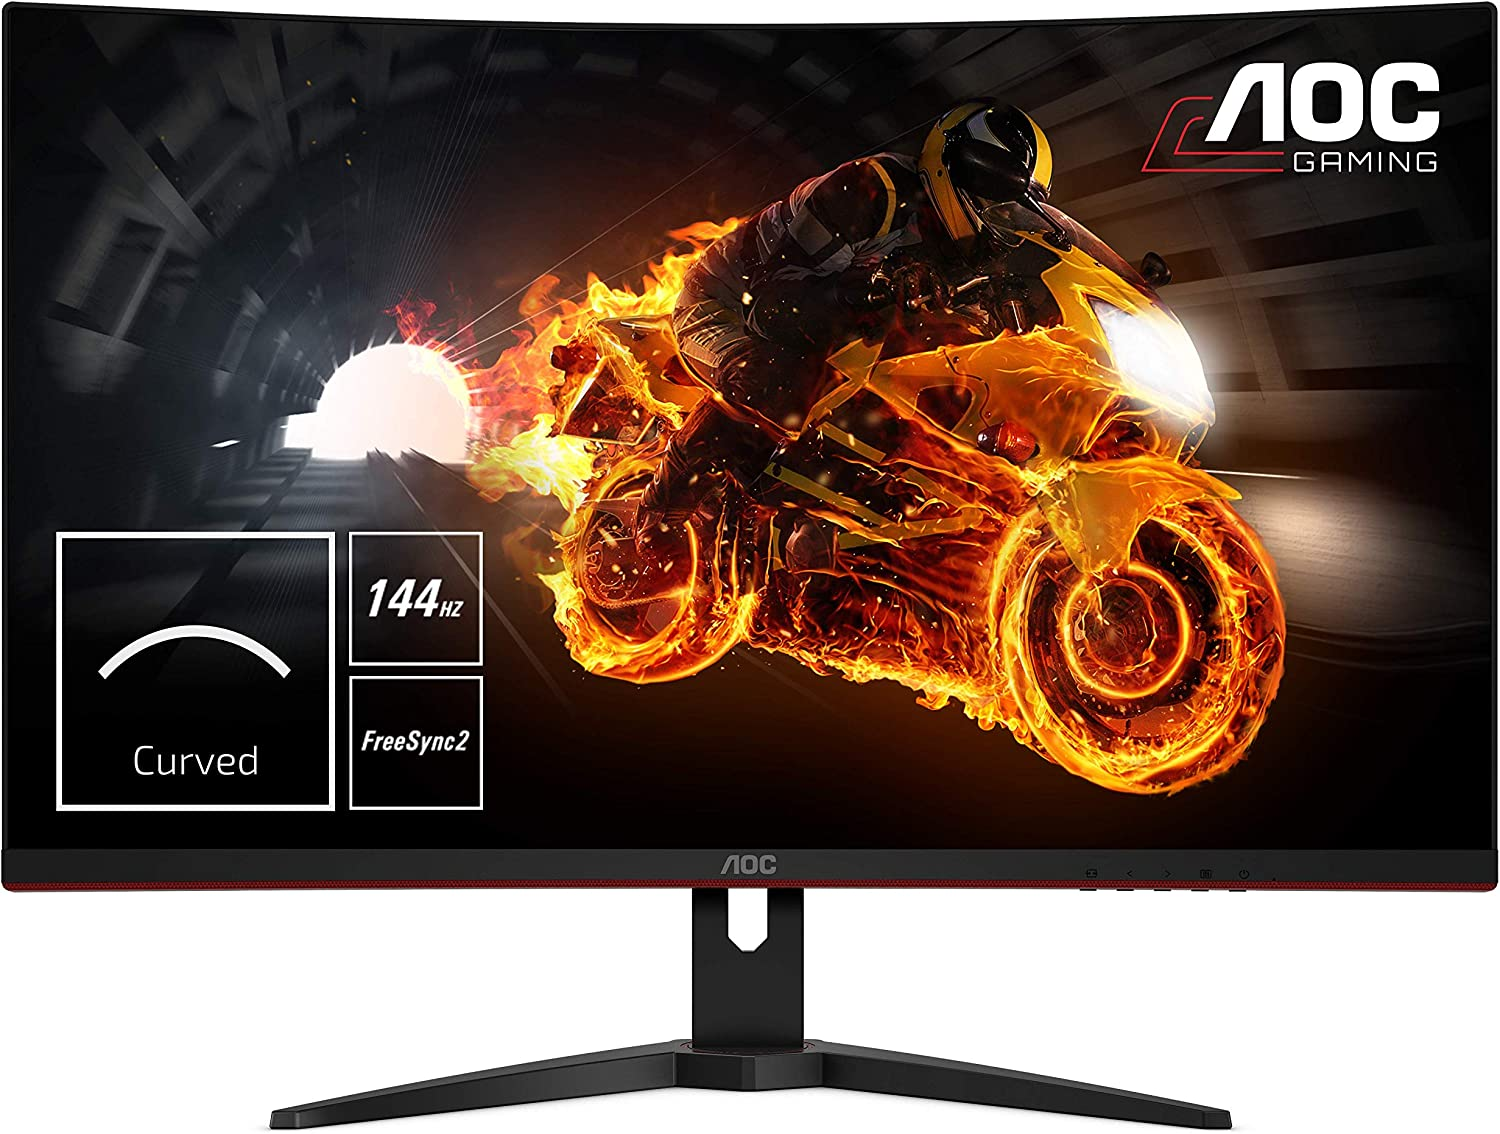 AOC c32g1 curved 32 inch gaming monitor